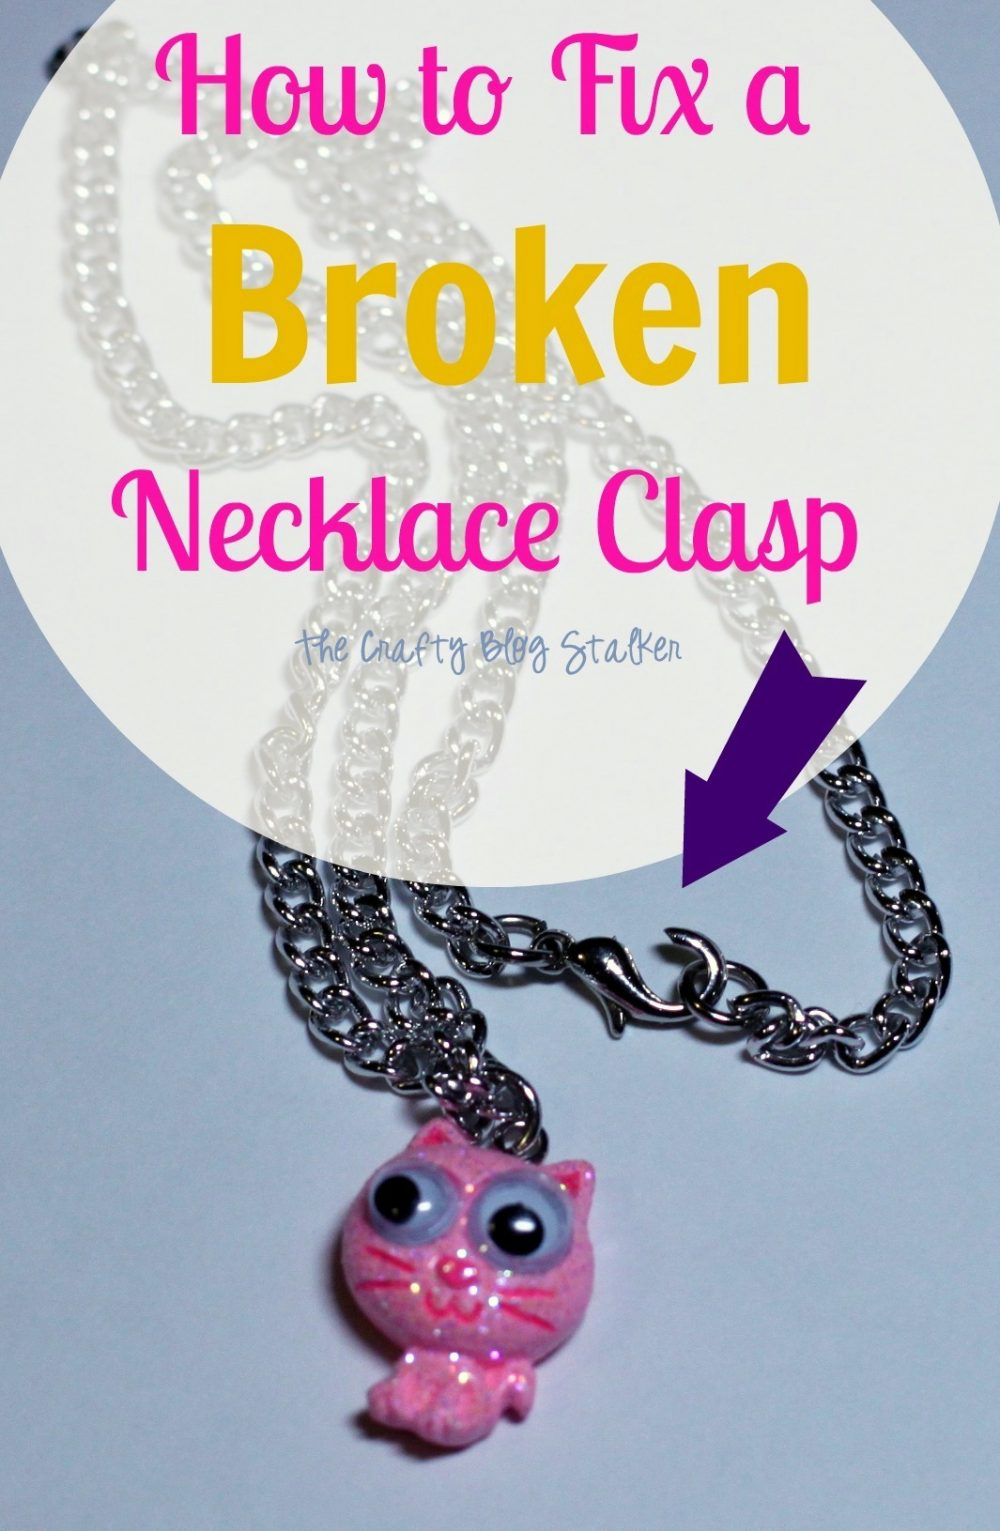 How To Fix A Broken Necklace Clasp